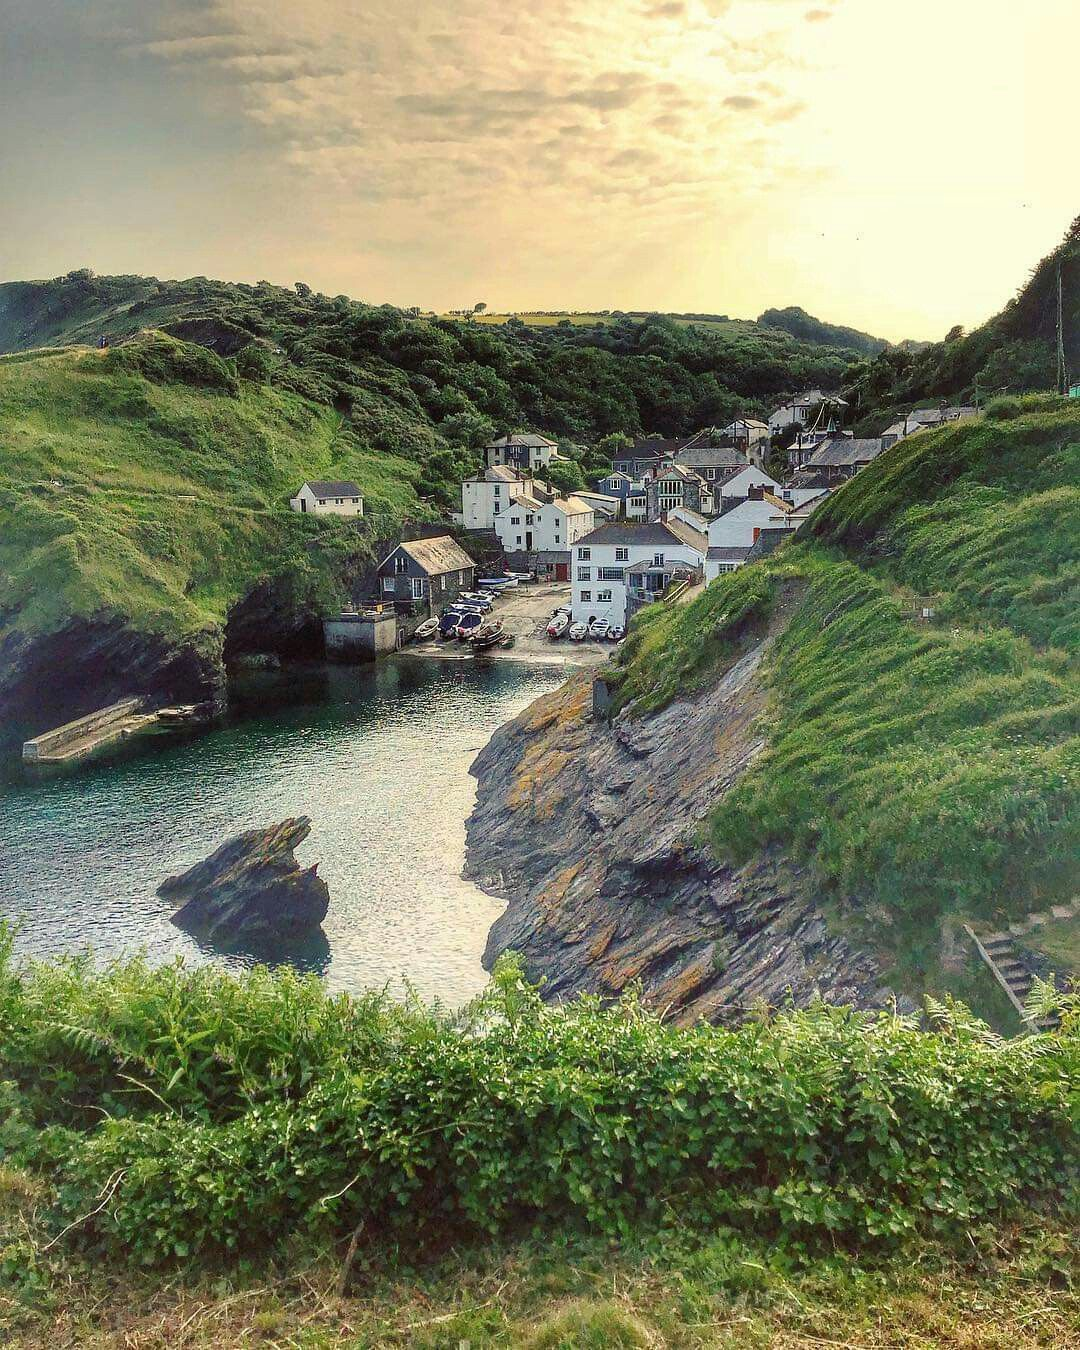 Portloe Cornwall Roseland Peninsula Cornwall England Irish Countryside